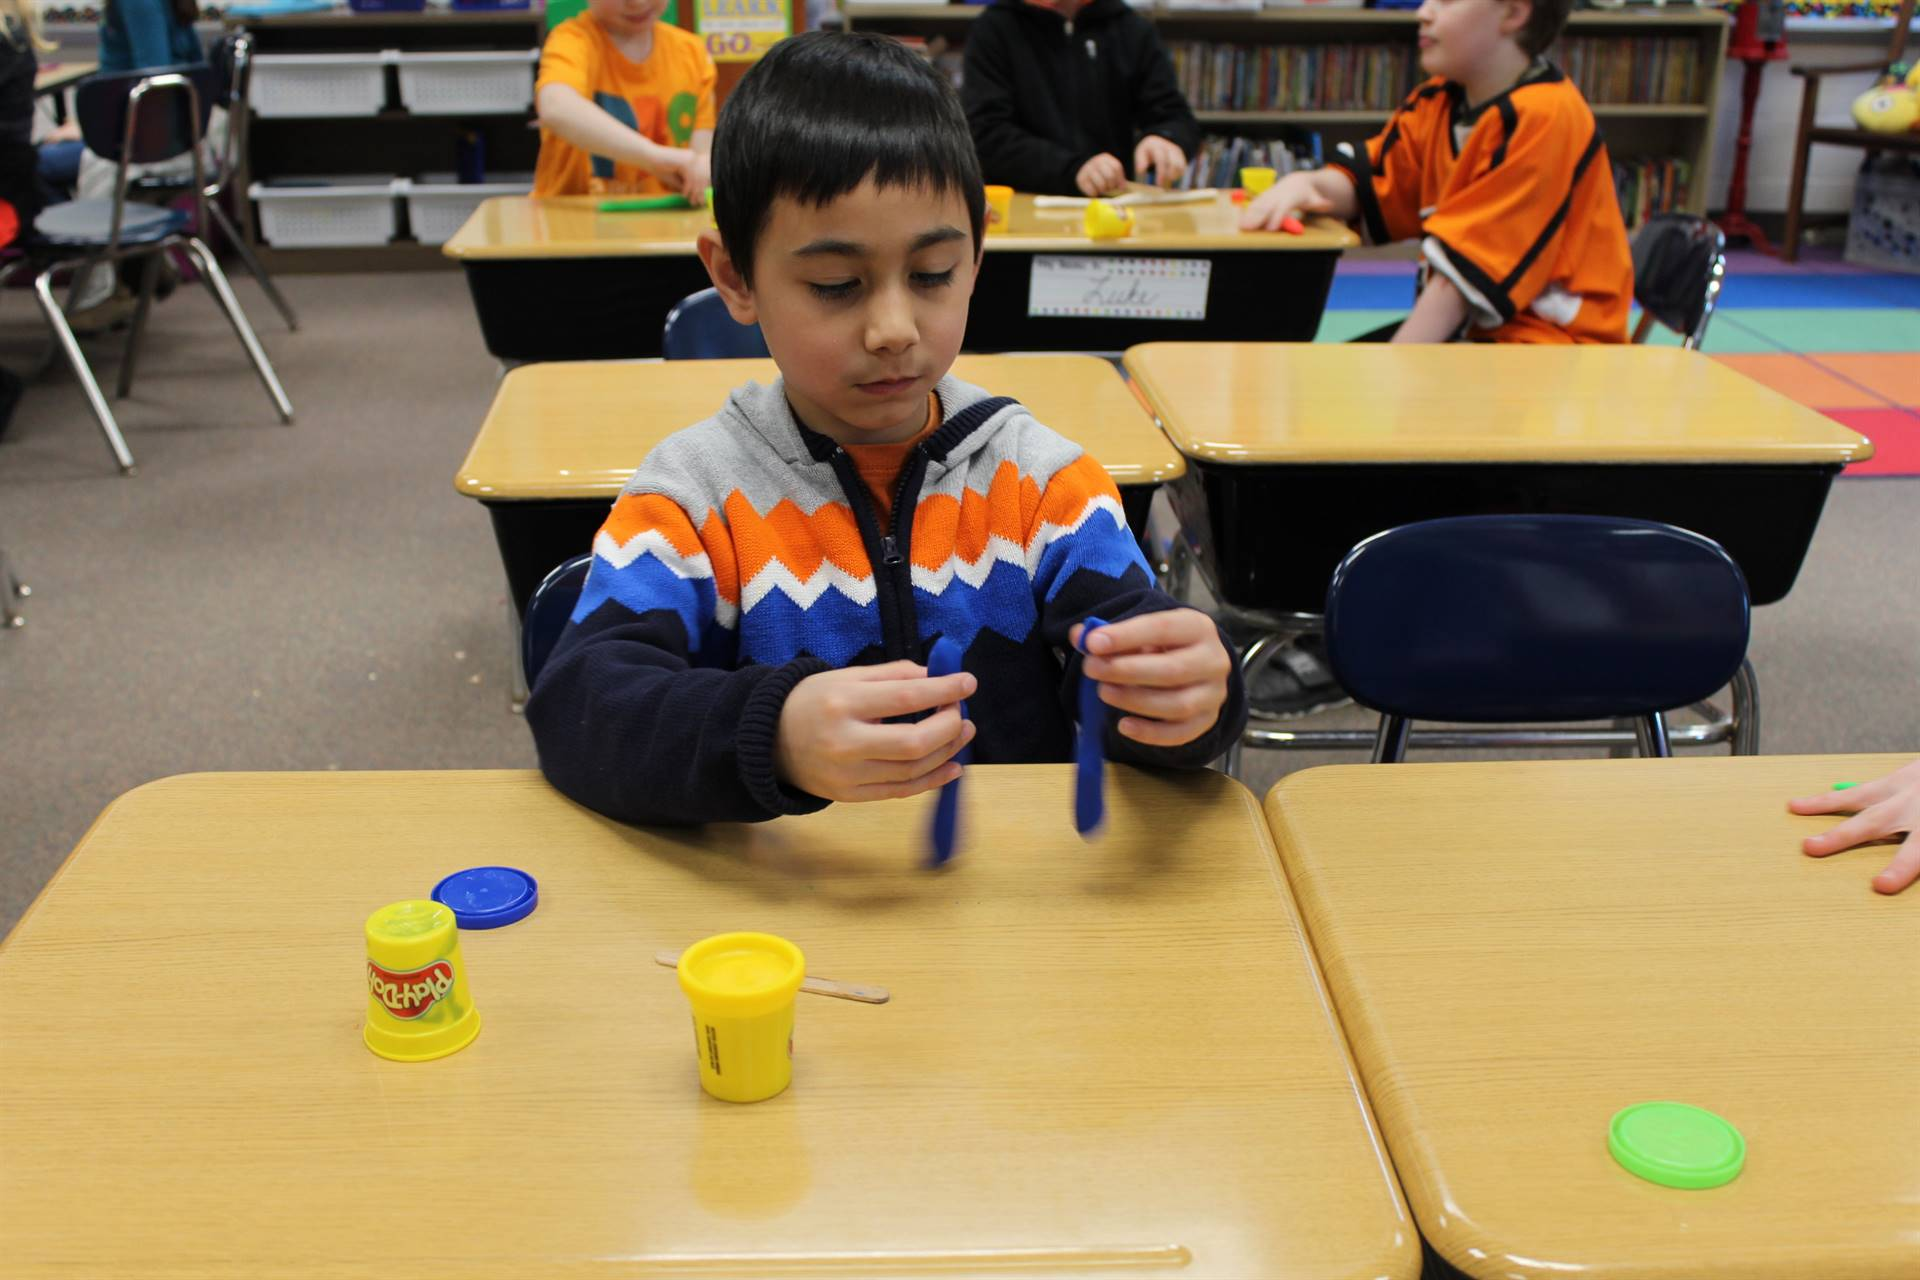 Student holding Play Dough